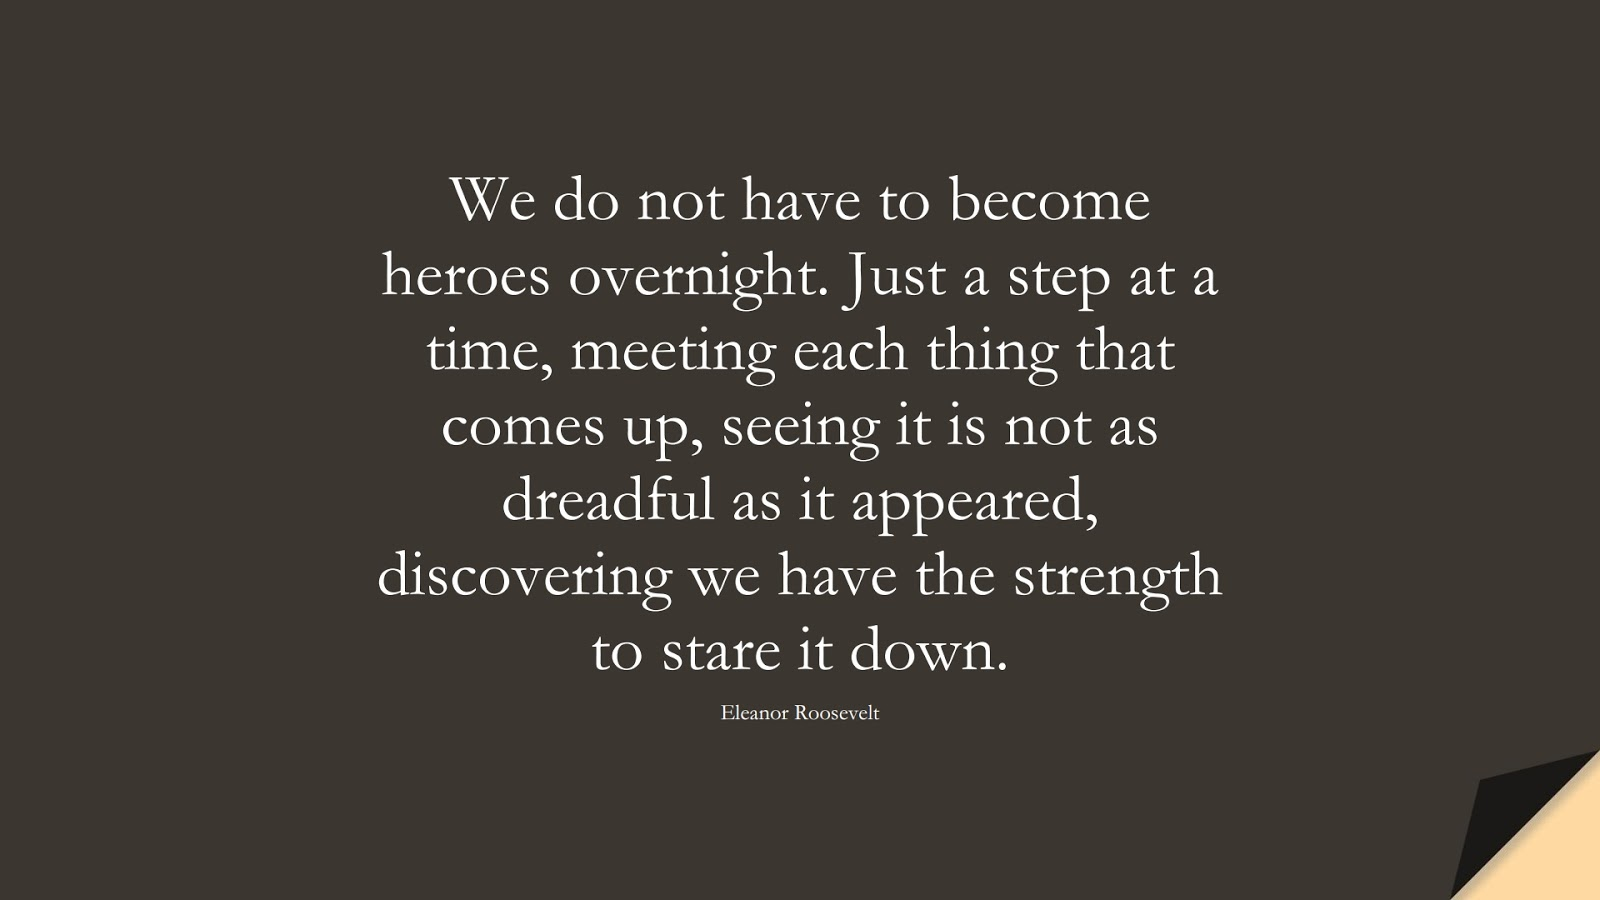 We do not have to become heroes overnight. Just a step at a time, meeting each thing that comes up, seeing it is not as dreadful as it appeared, discovering we have the strength to stare it down. (Eleanor Roosevelt);  #CourageQuotes